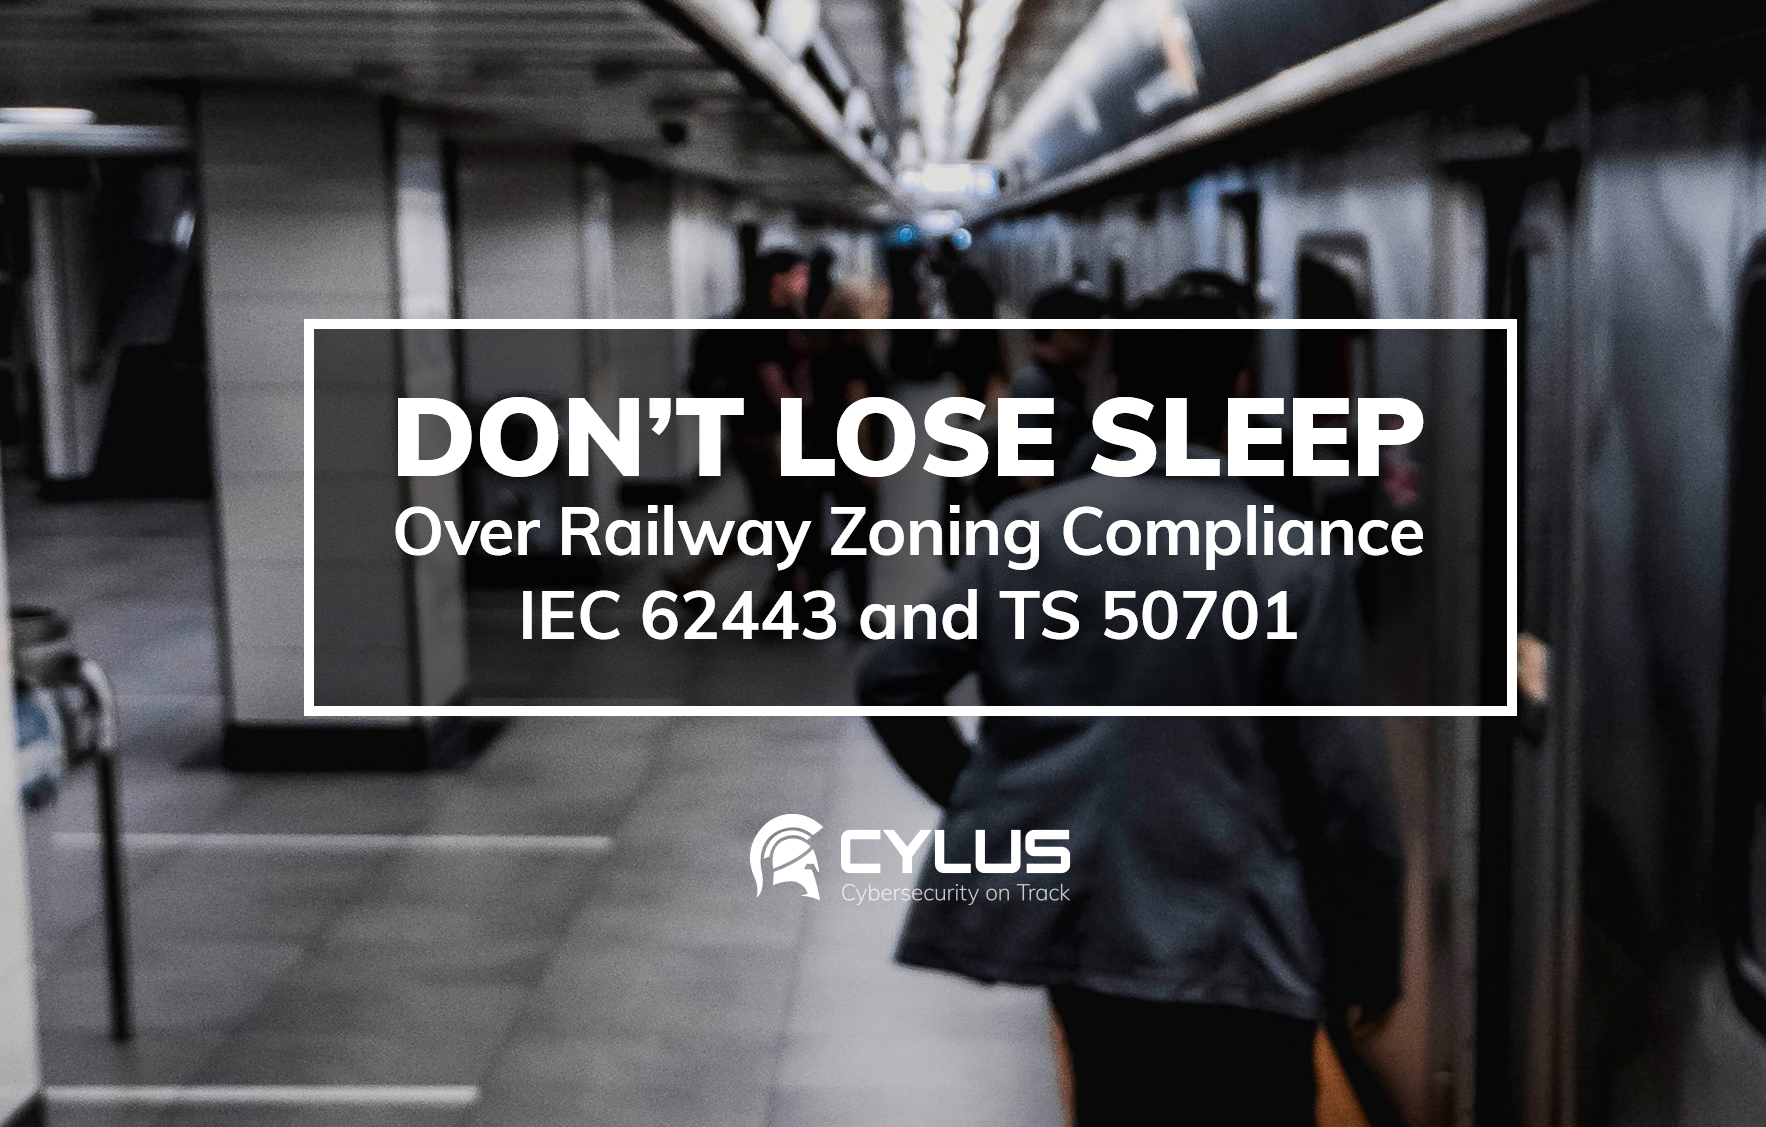 Don't Lose Sleep Over Railway Zoning Compliance